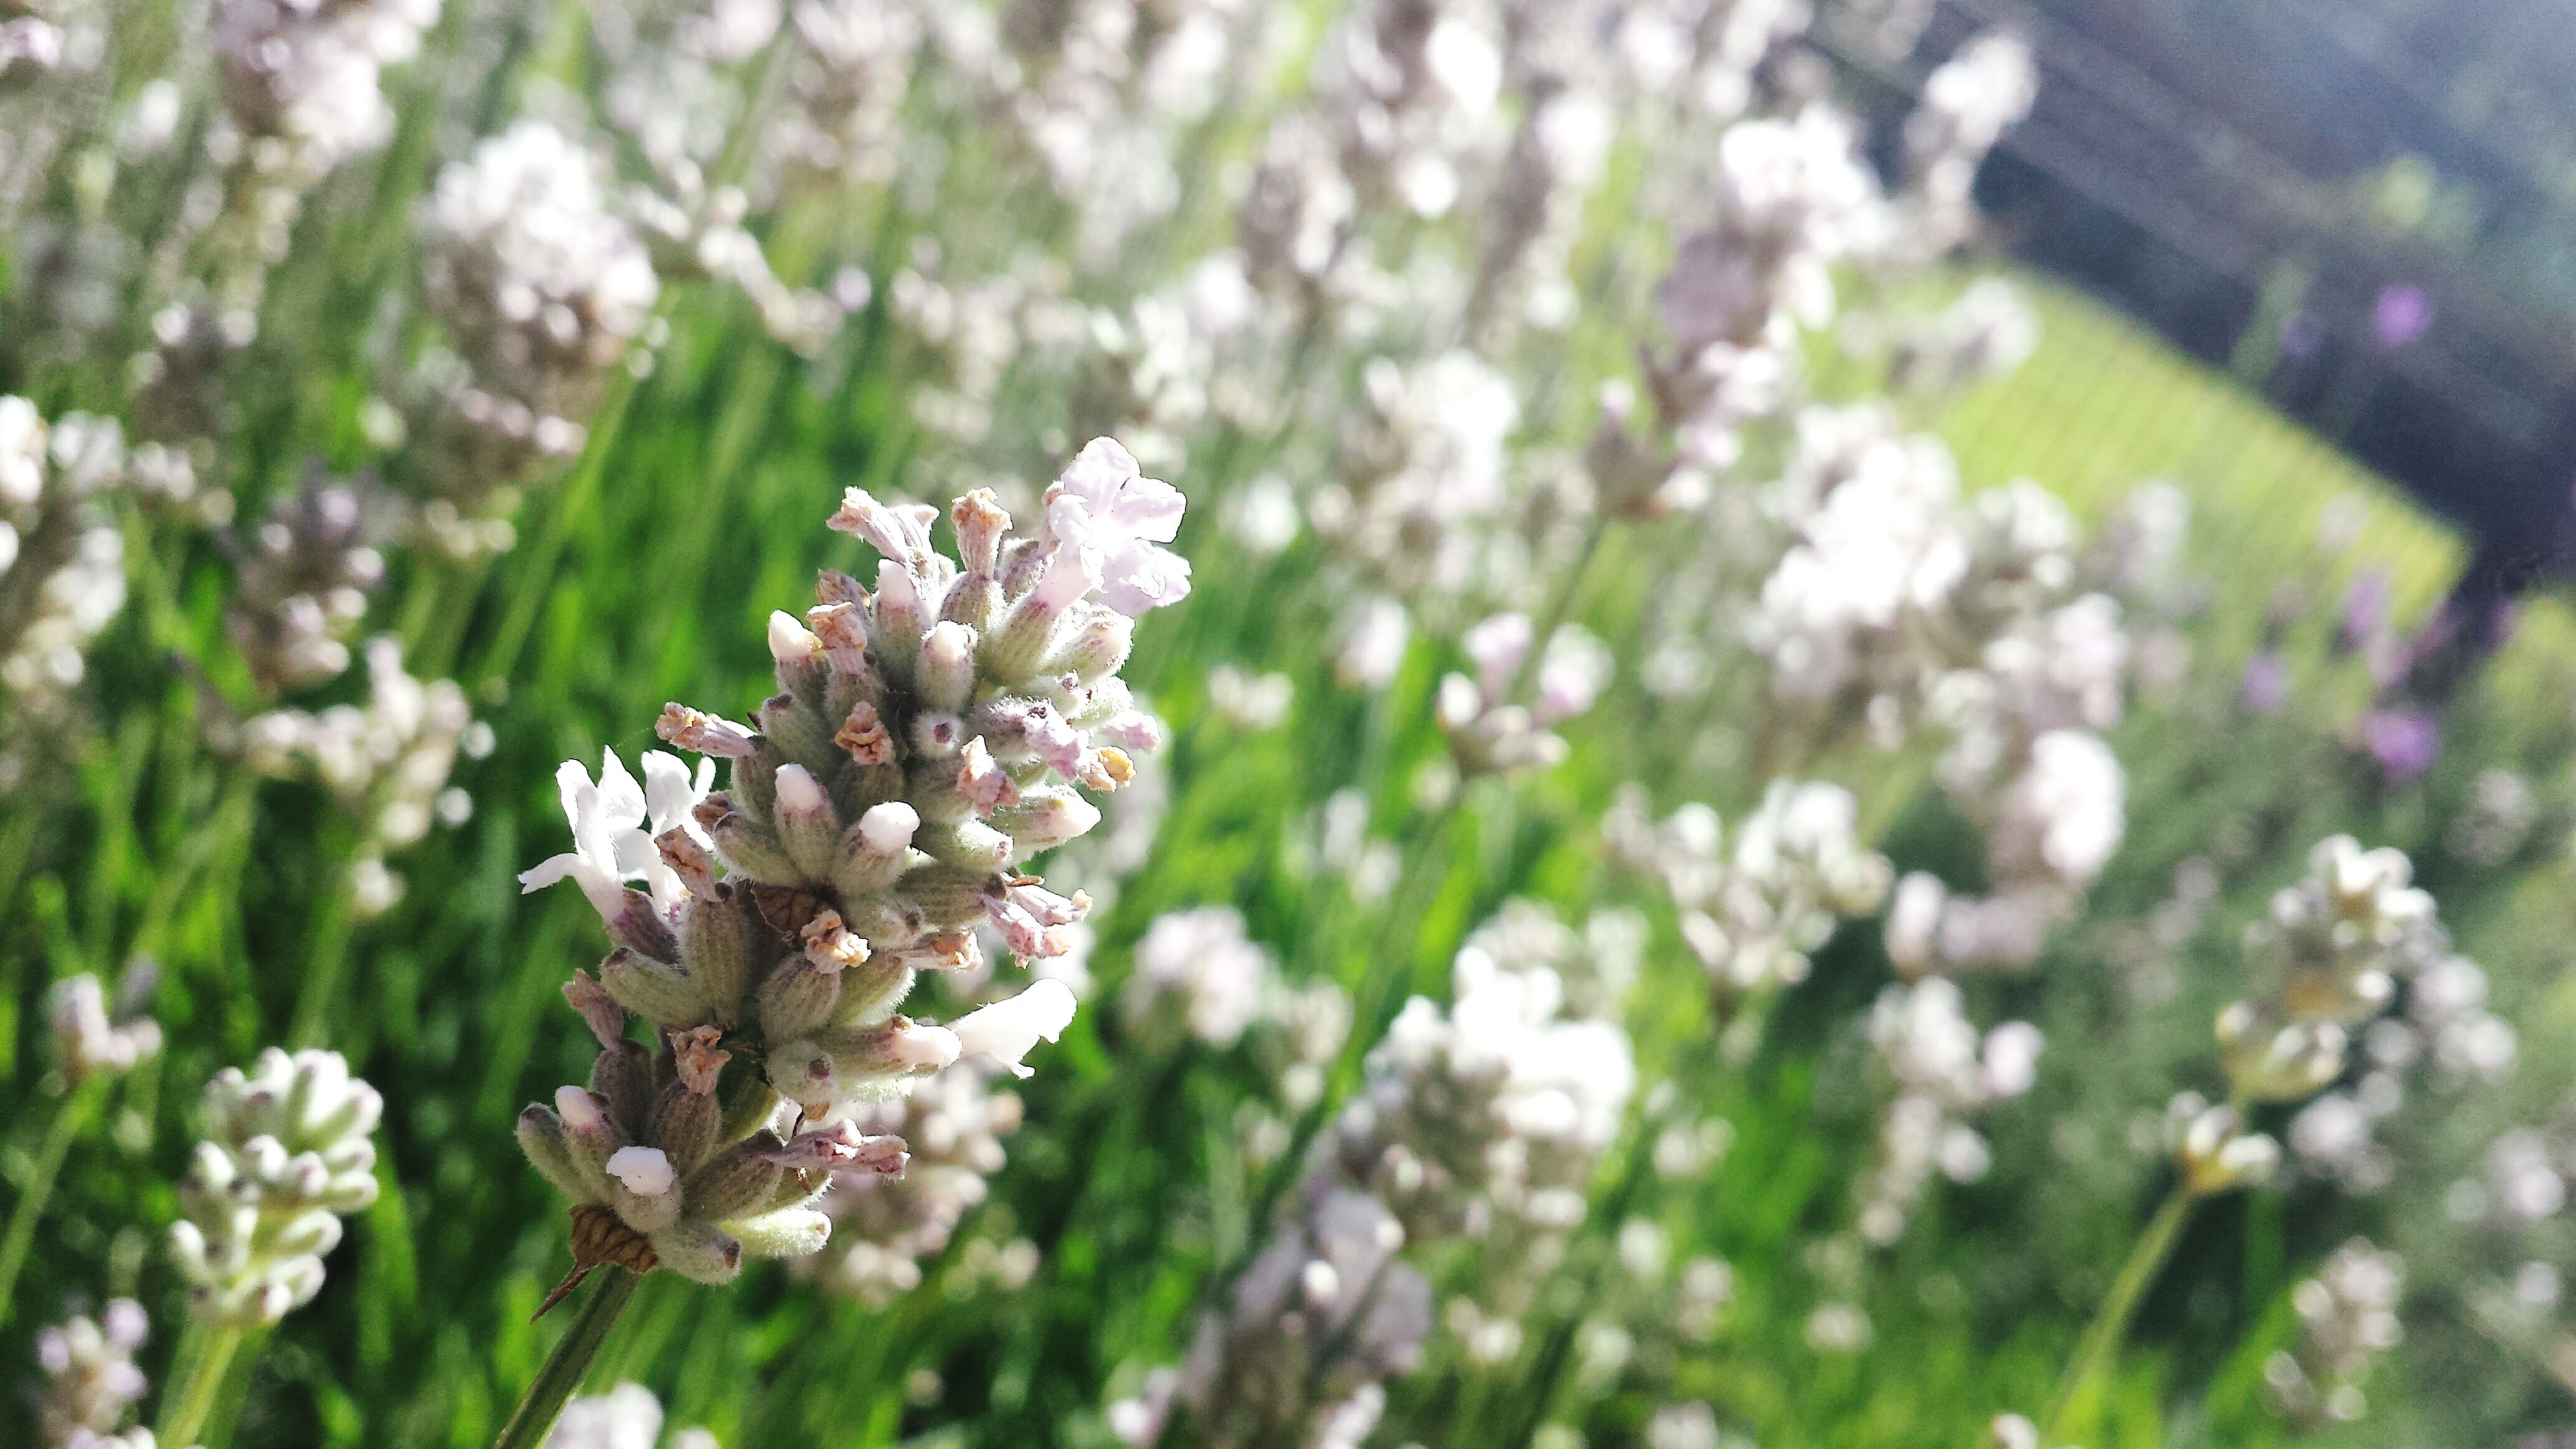 flower, freshness, growth, fragility, beauty in nature, focus on foreground, white color, petal, nature, close-up, blooming, flower head, blossom, selective focus, in bloom, plant, springtime, outdoors, day, stem